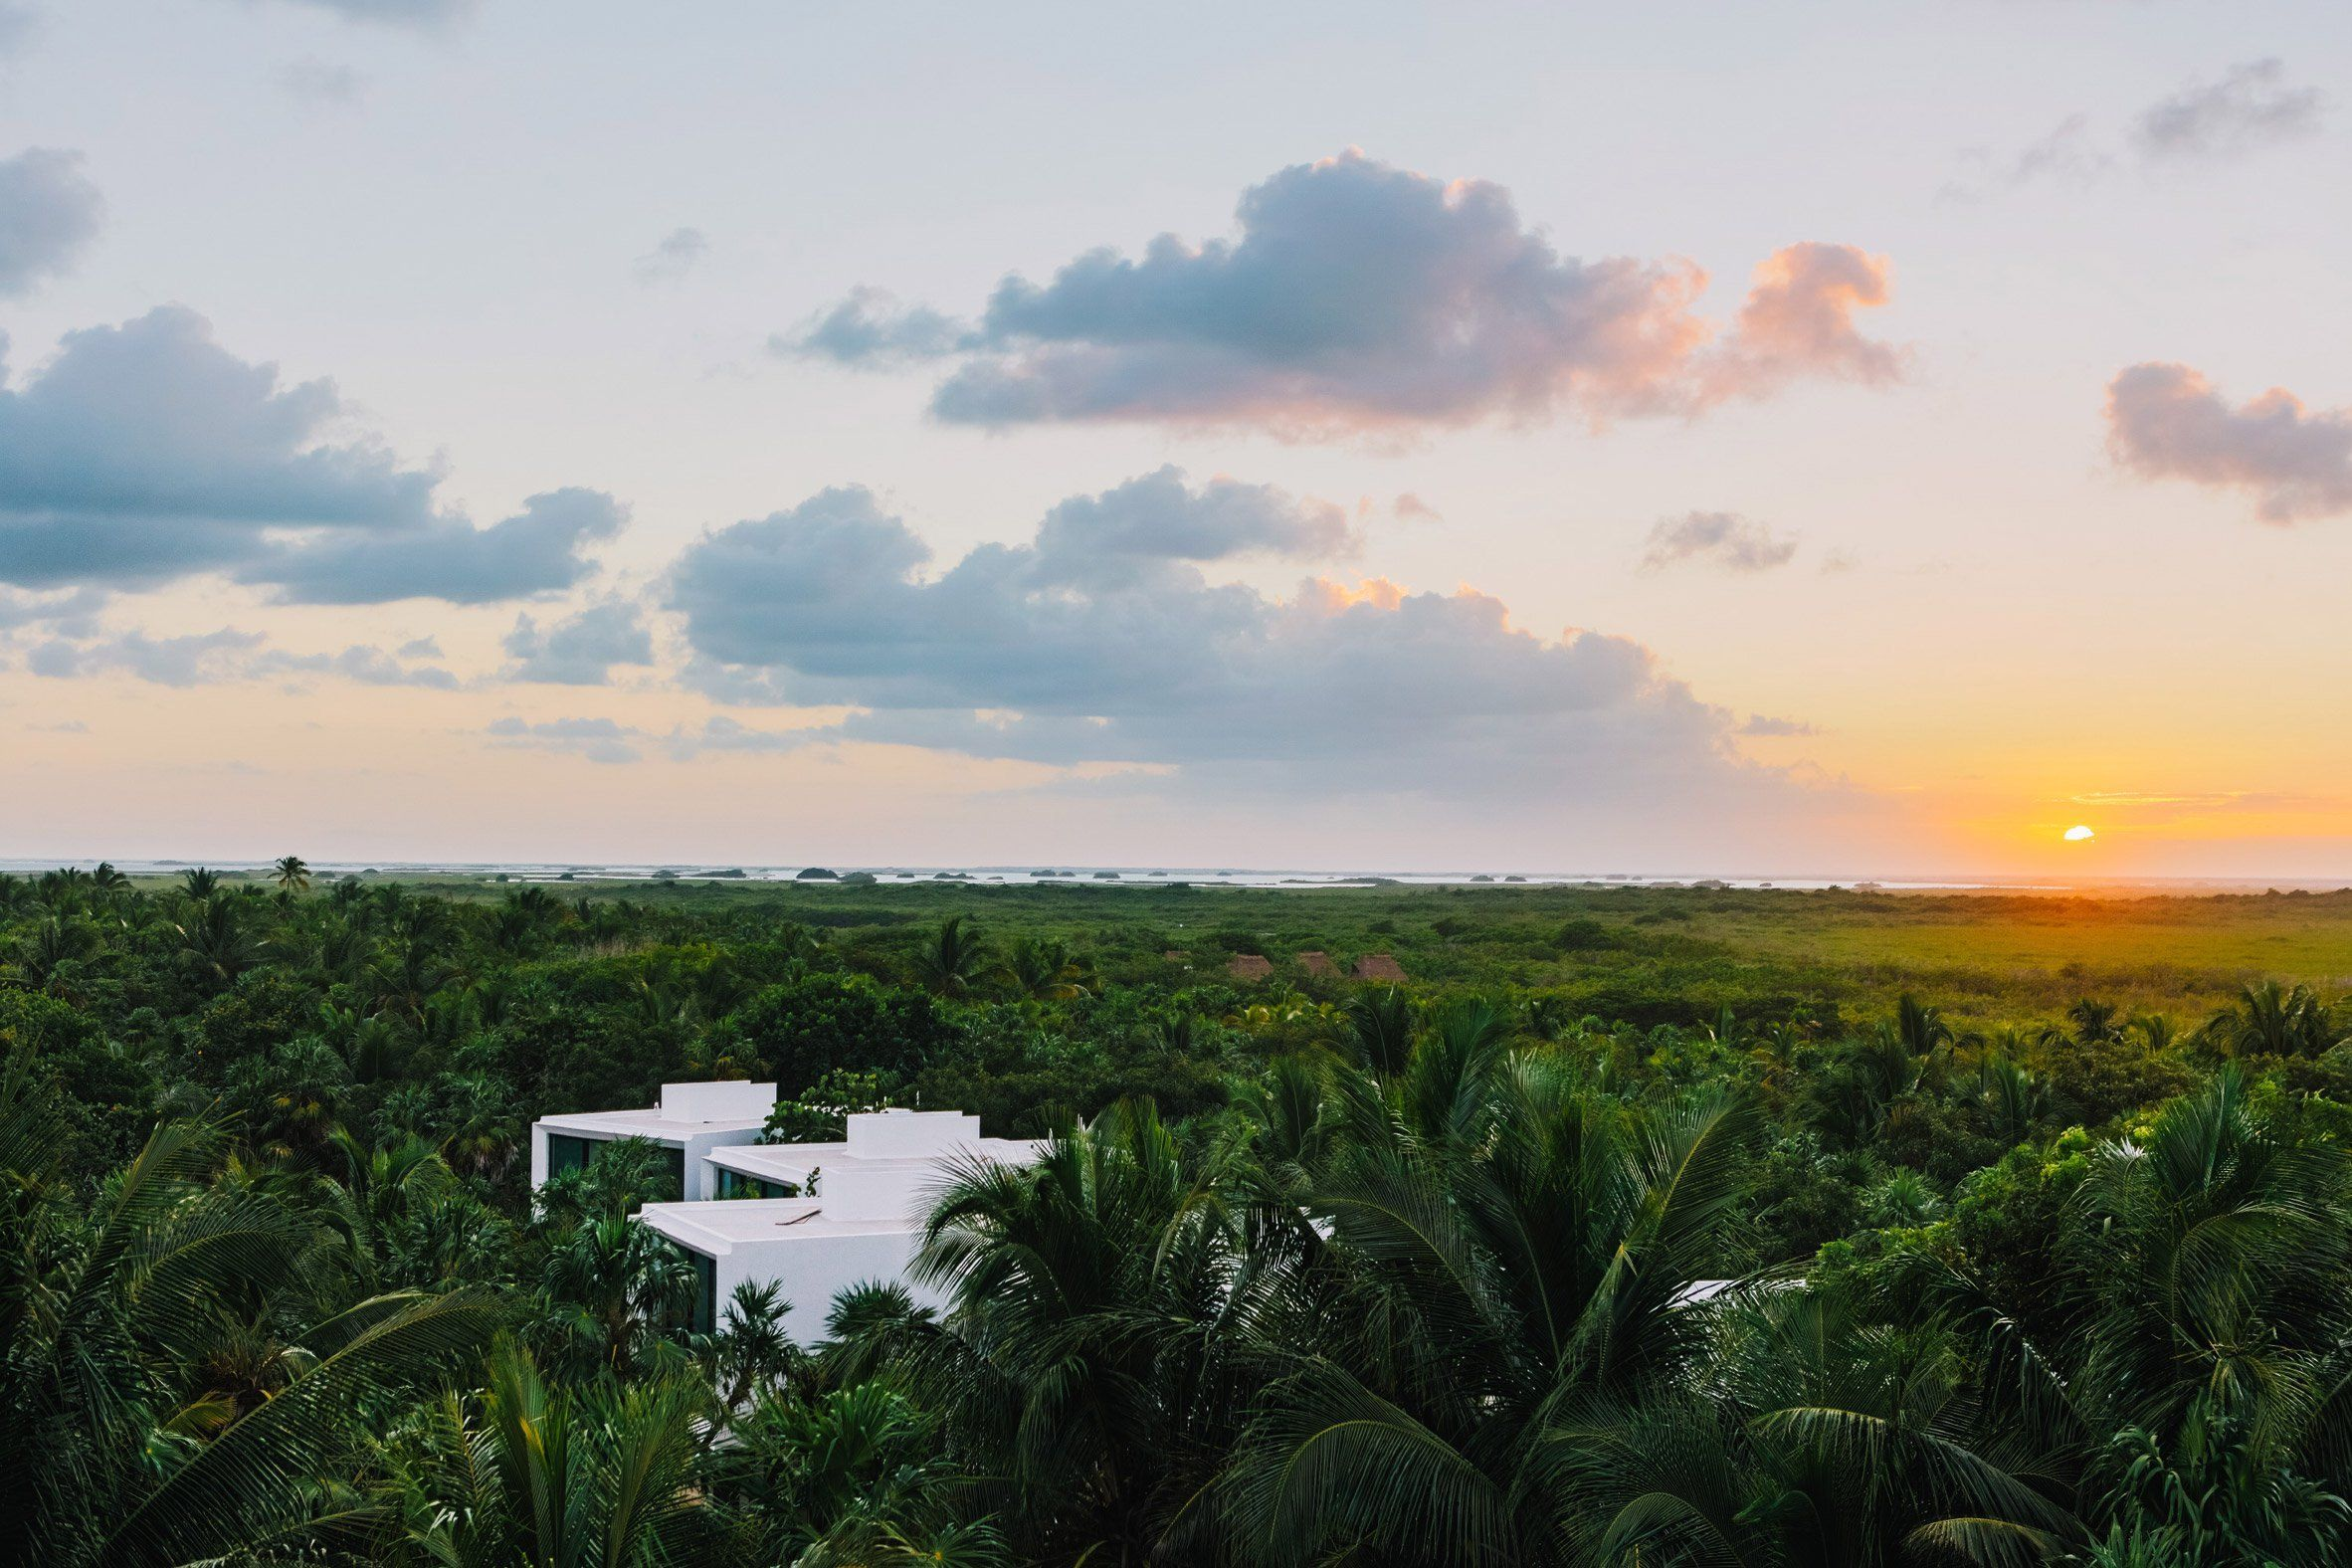 Hey Narcos Fans Stay In Pablo Escobars Mansion Turned Luxury Resort In Tulum Hey Narcos Fans Stay In Pablo Escobars Mansion Turned Luxury Resort In Tulum  Photo Credit Ca...